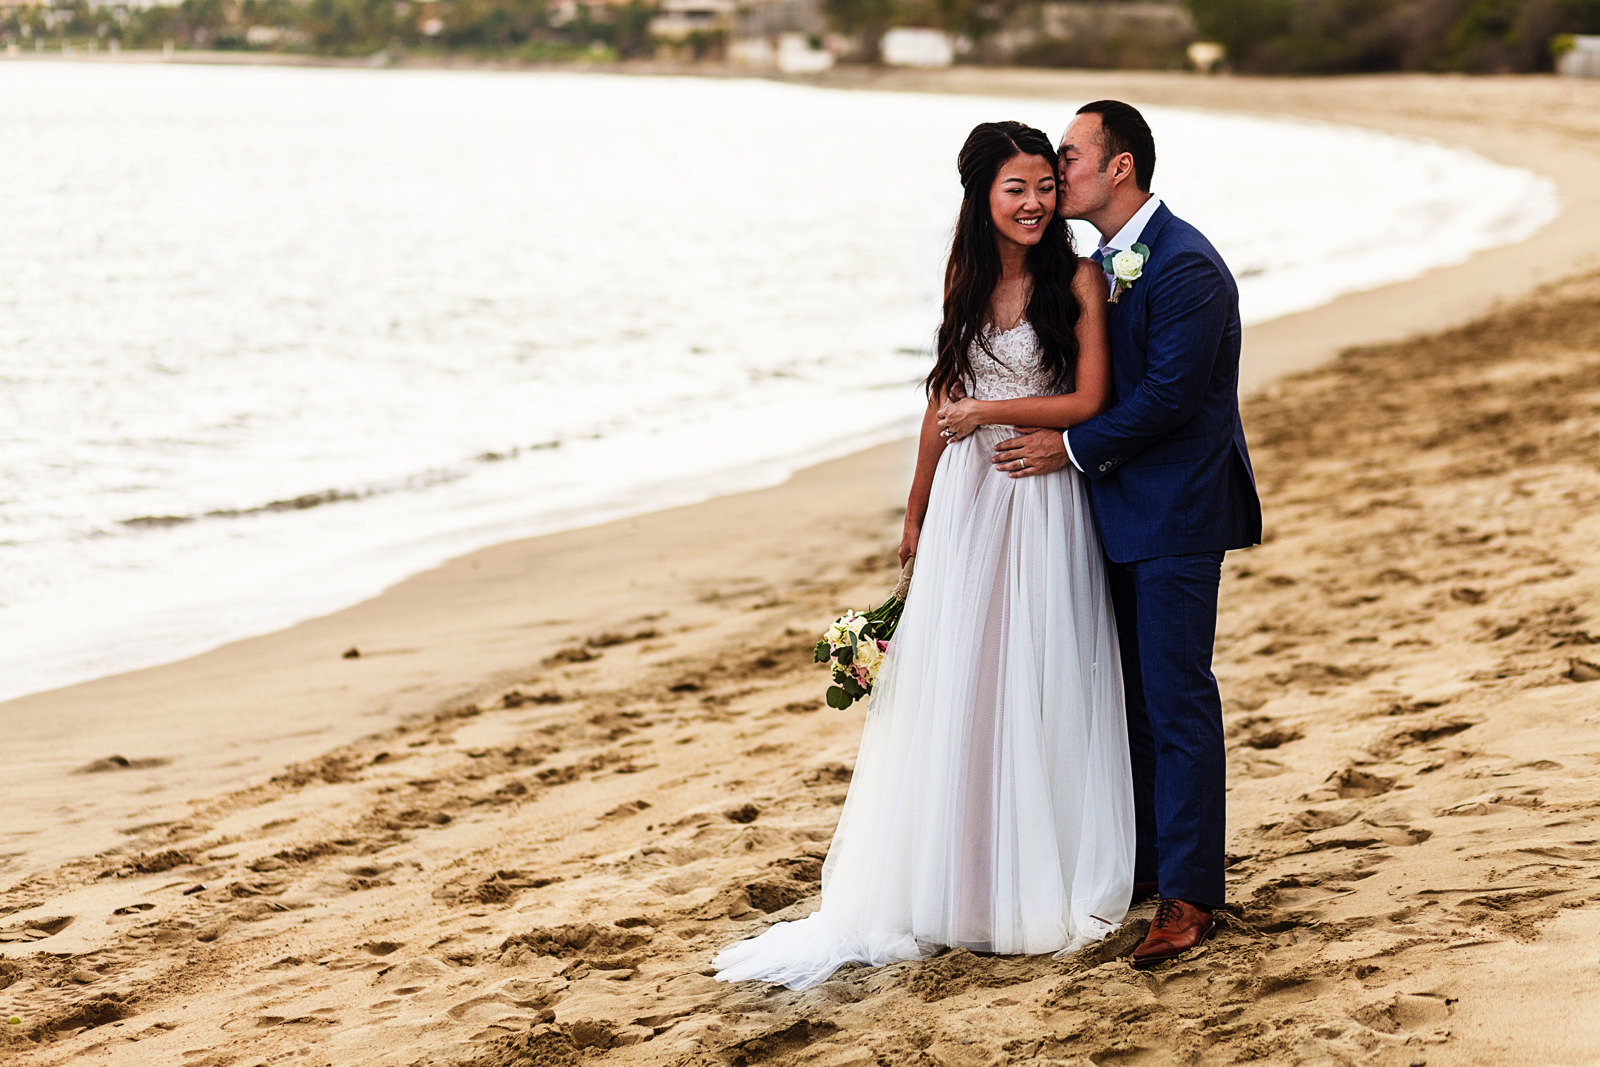 Groom and bride standing on the beach at Bucerias near the ocean.